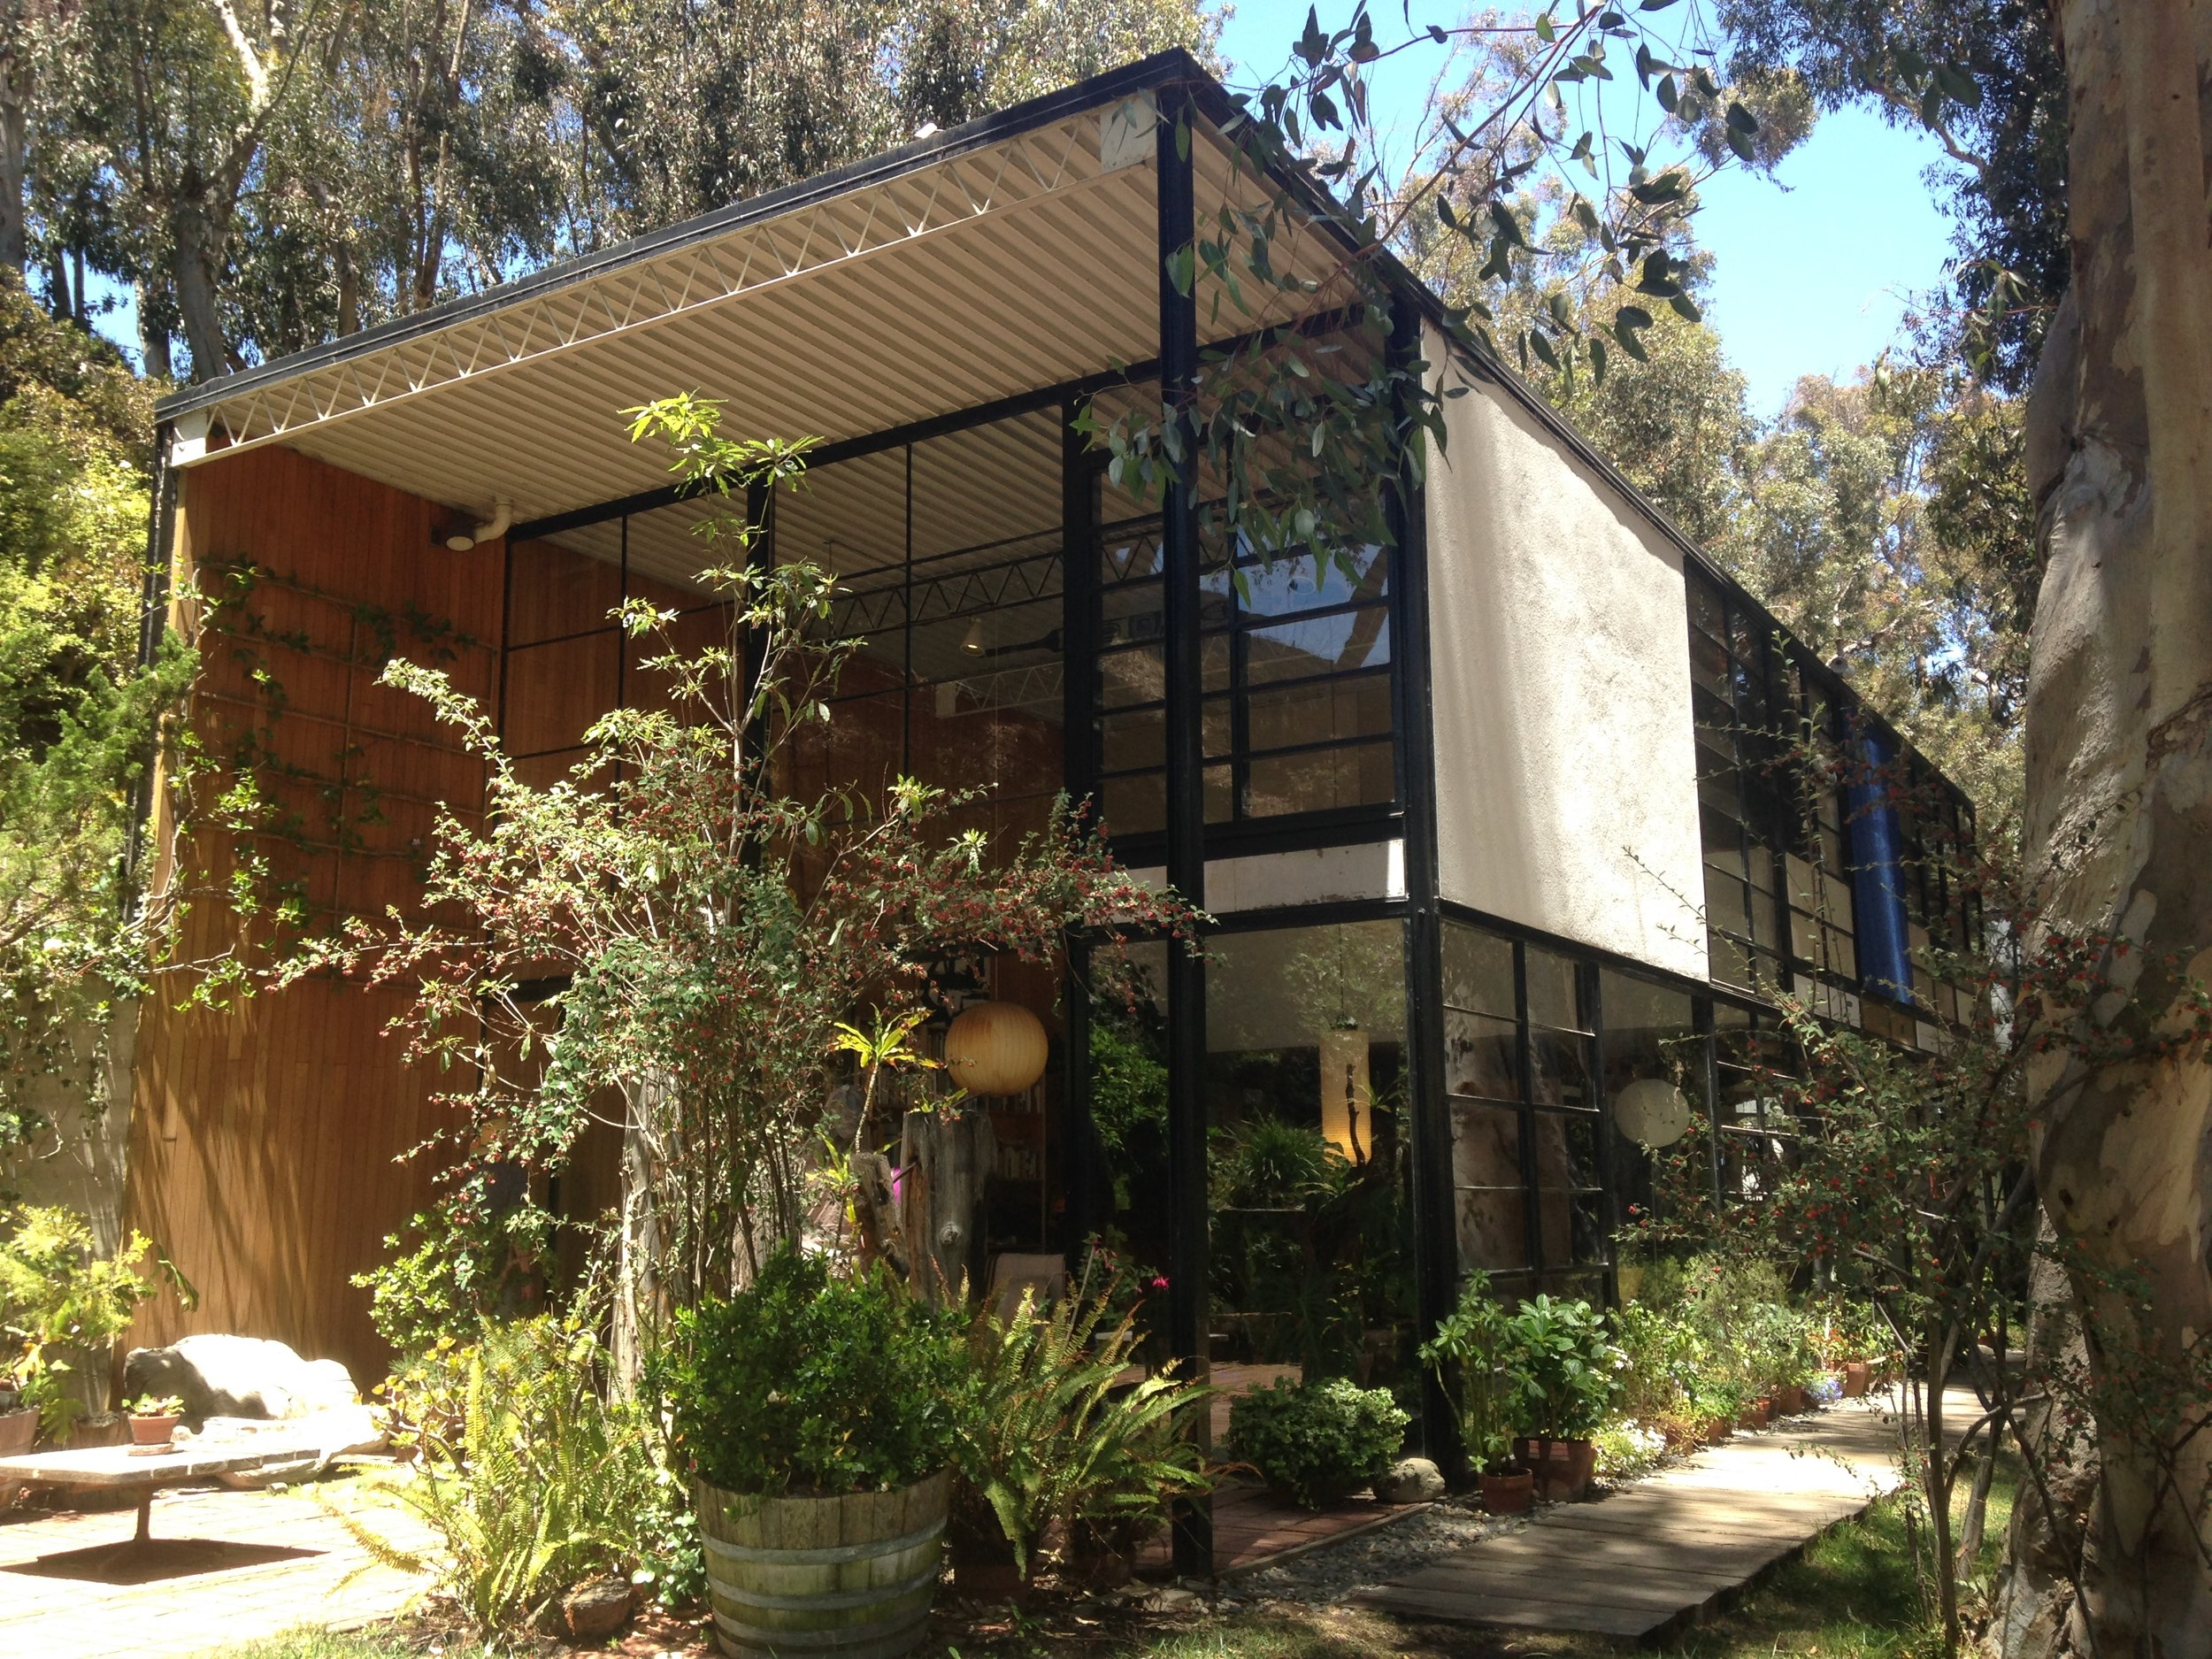 edward stojakovic_Eames House.jpg